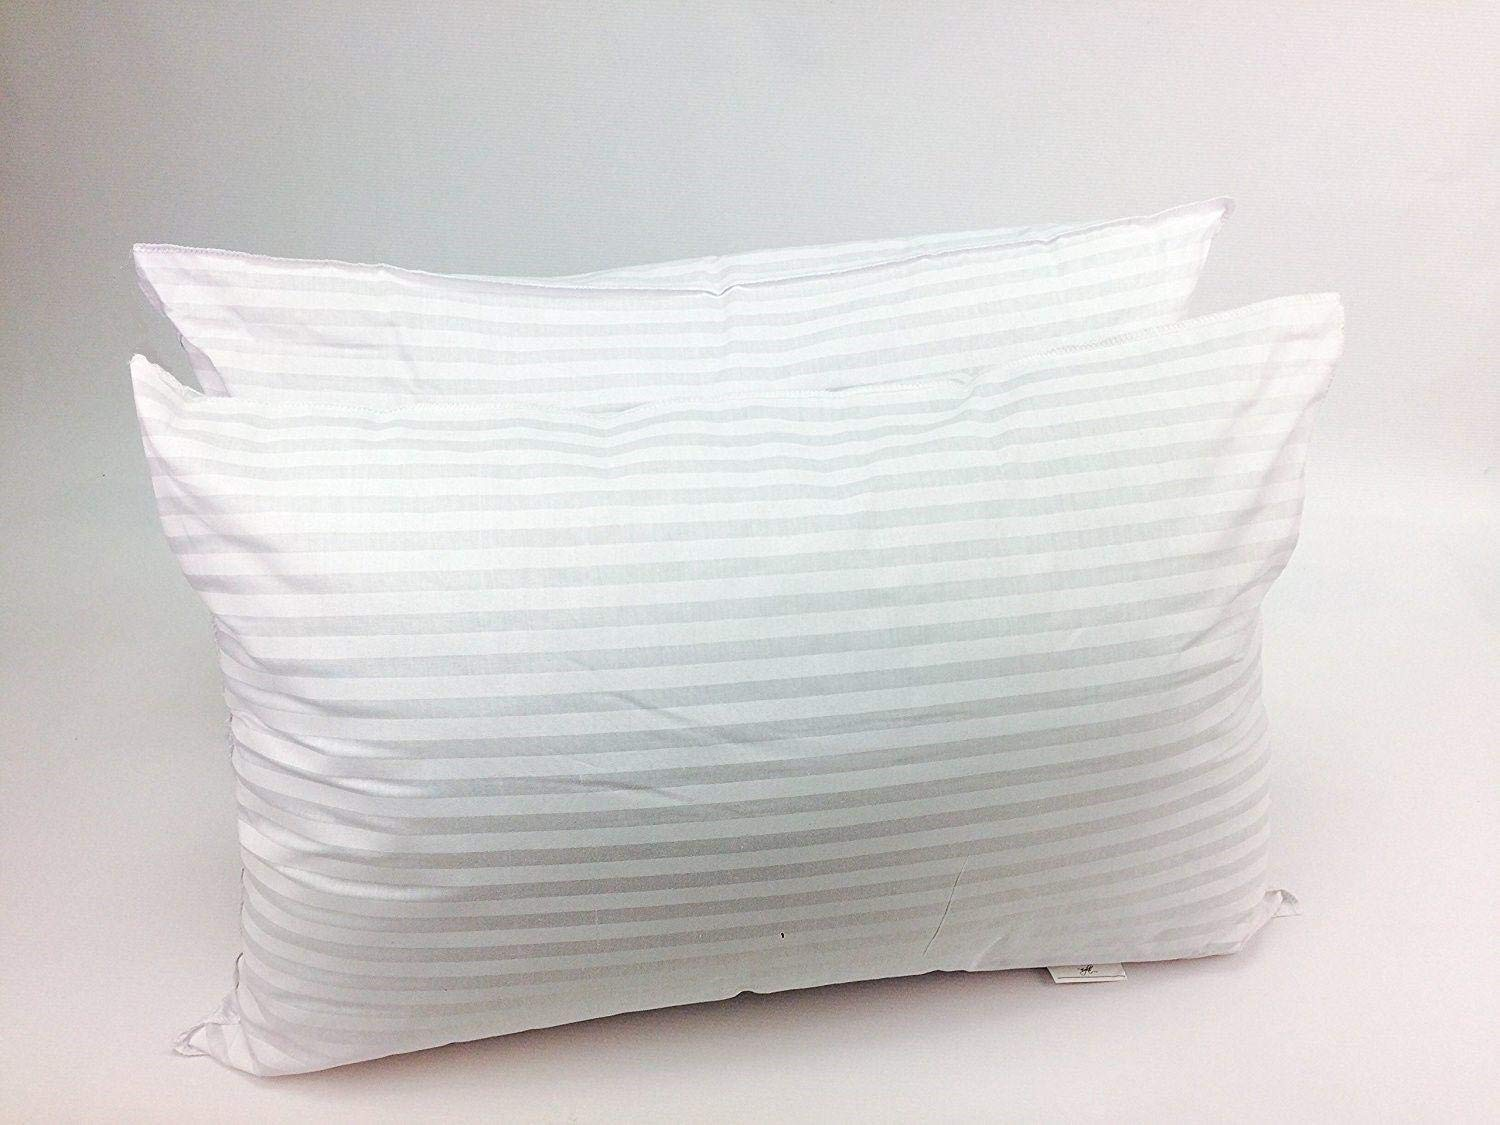 X11 Homeware Pillows Hollowfibre Bounce Back Firm Filling Stripes Feel Pack of 2